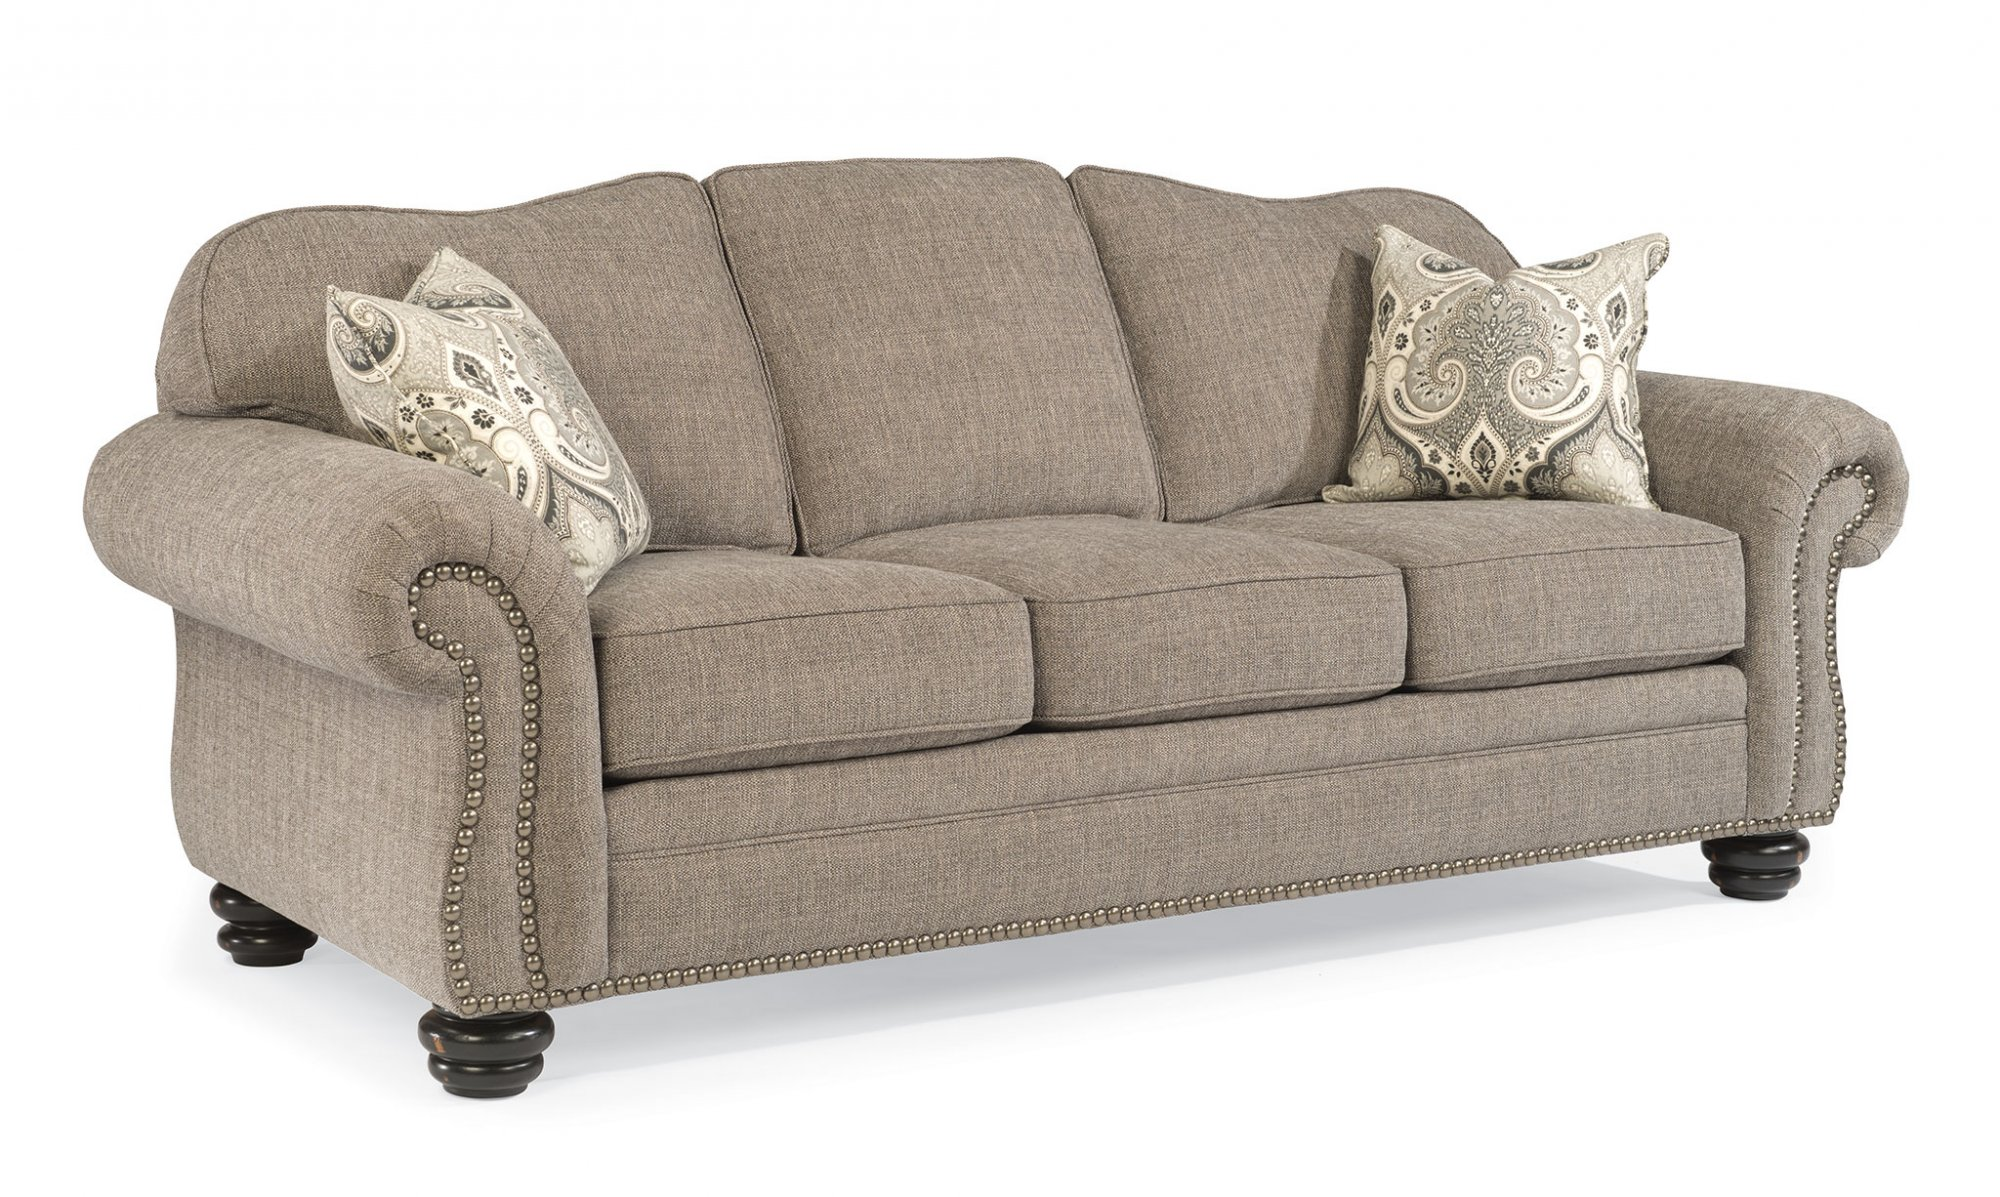 Flex Steel Furniture for all   goodworksfurniture flexsteel sofas share via email download a high resolution image AAQTPWC